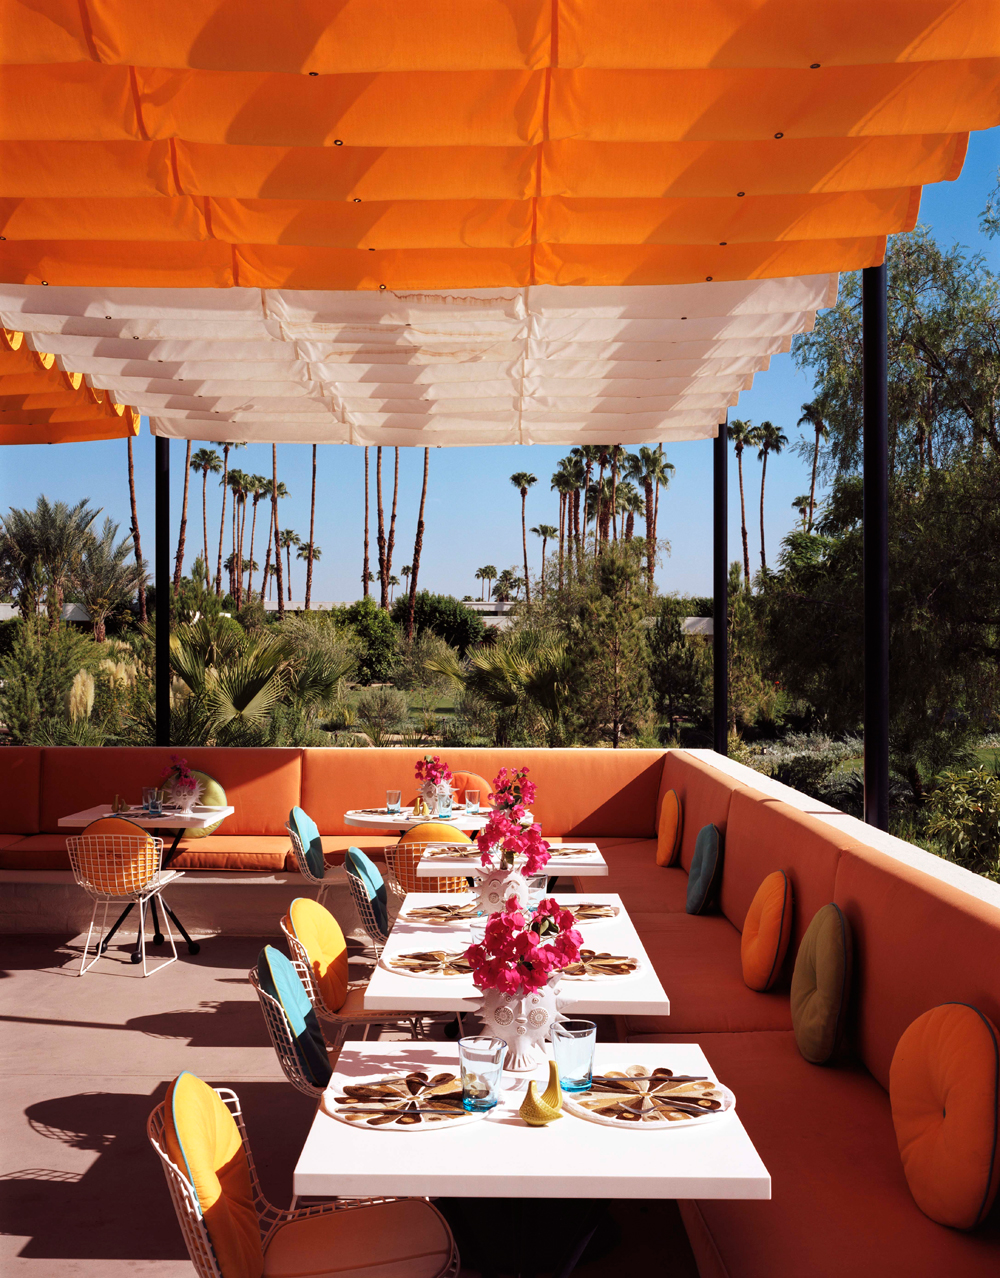 Sommer in palm springs westwing magazin for Jonathan adler hotel palm springs